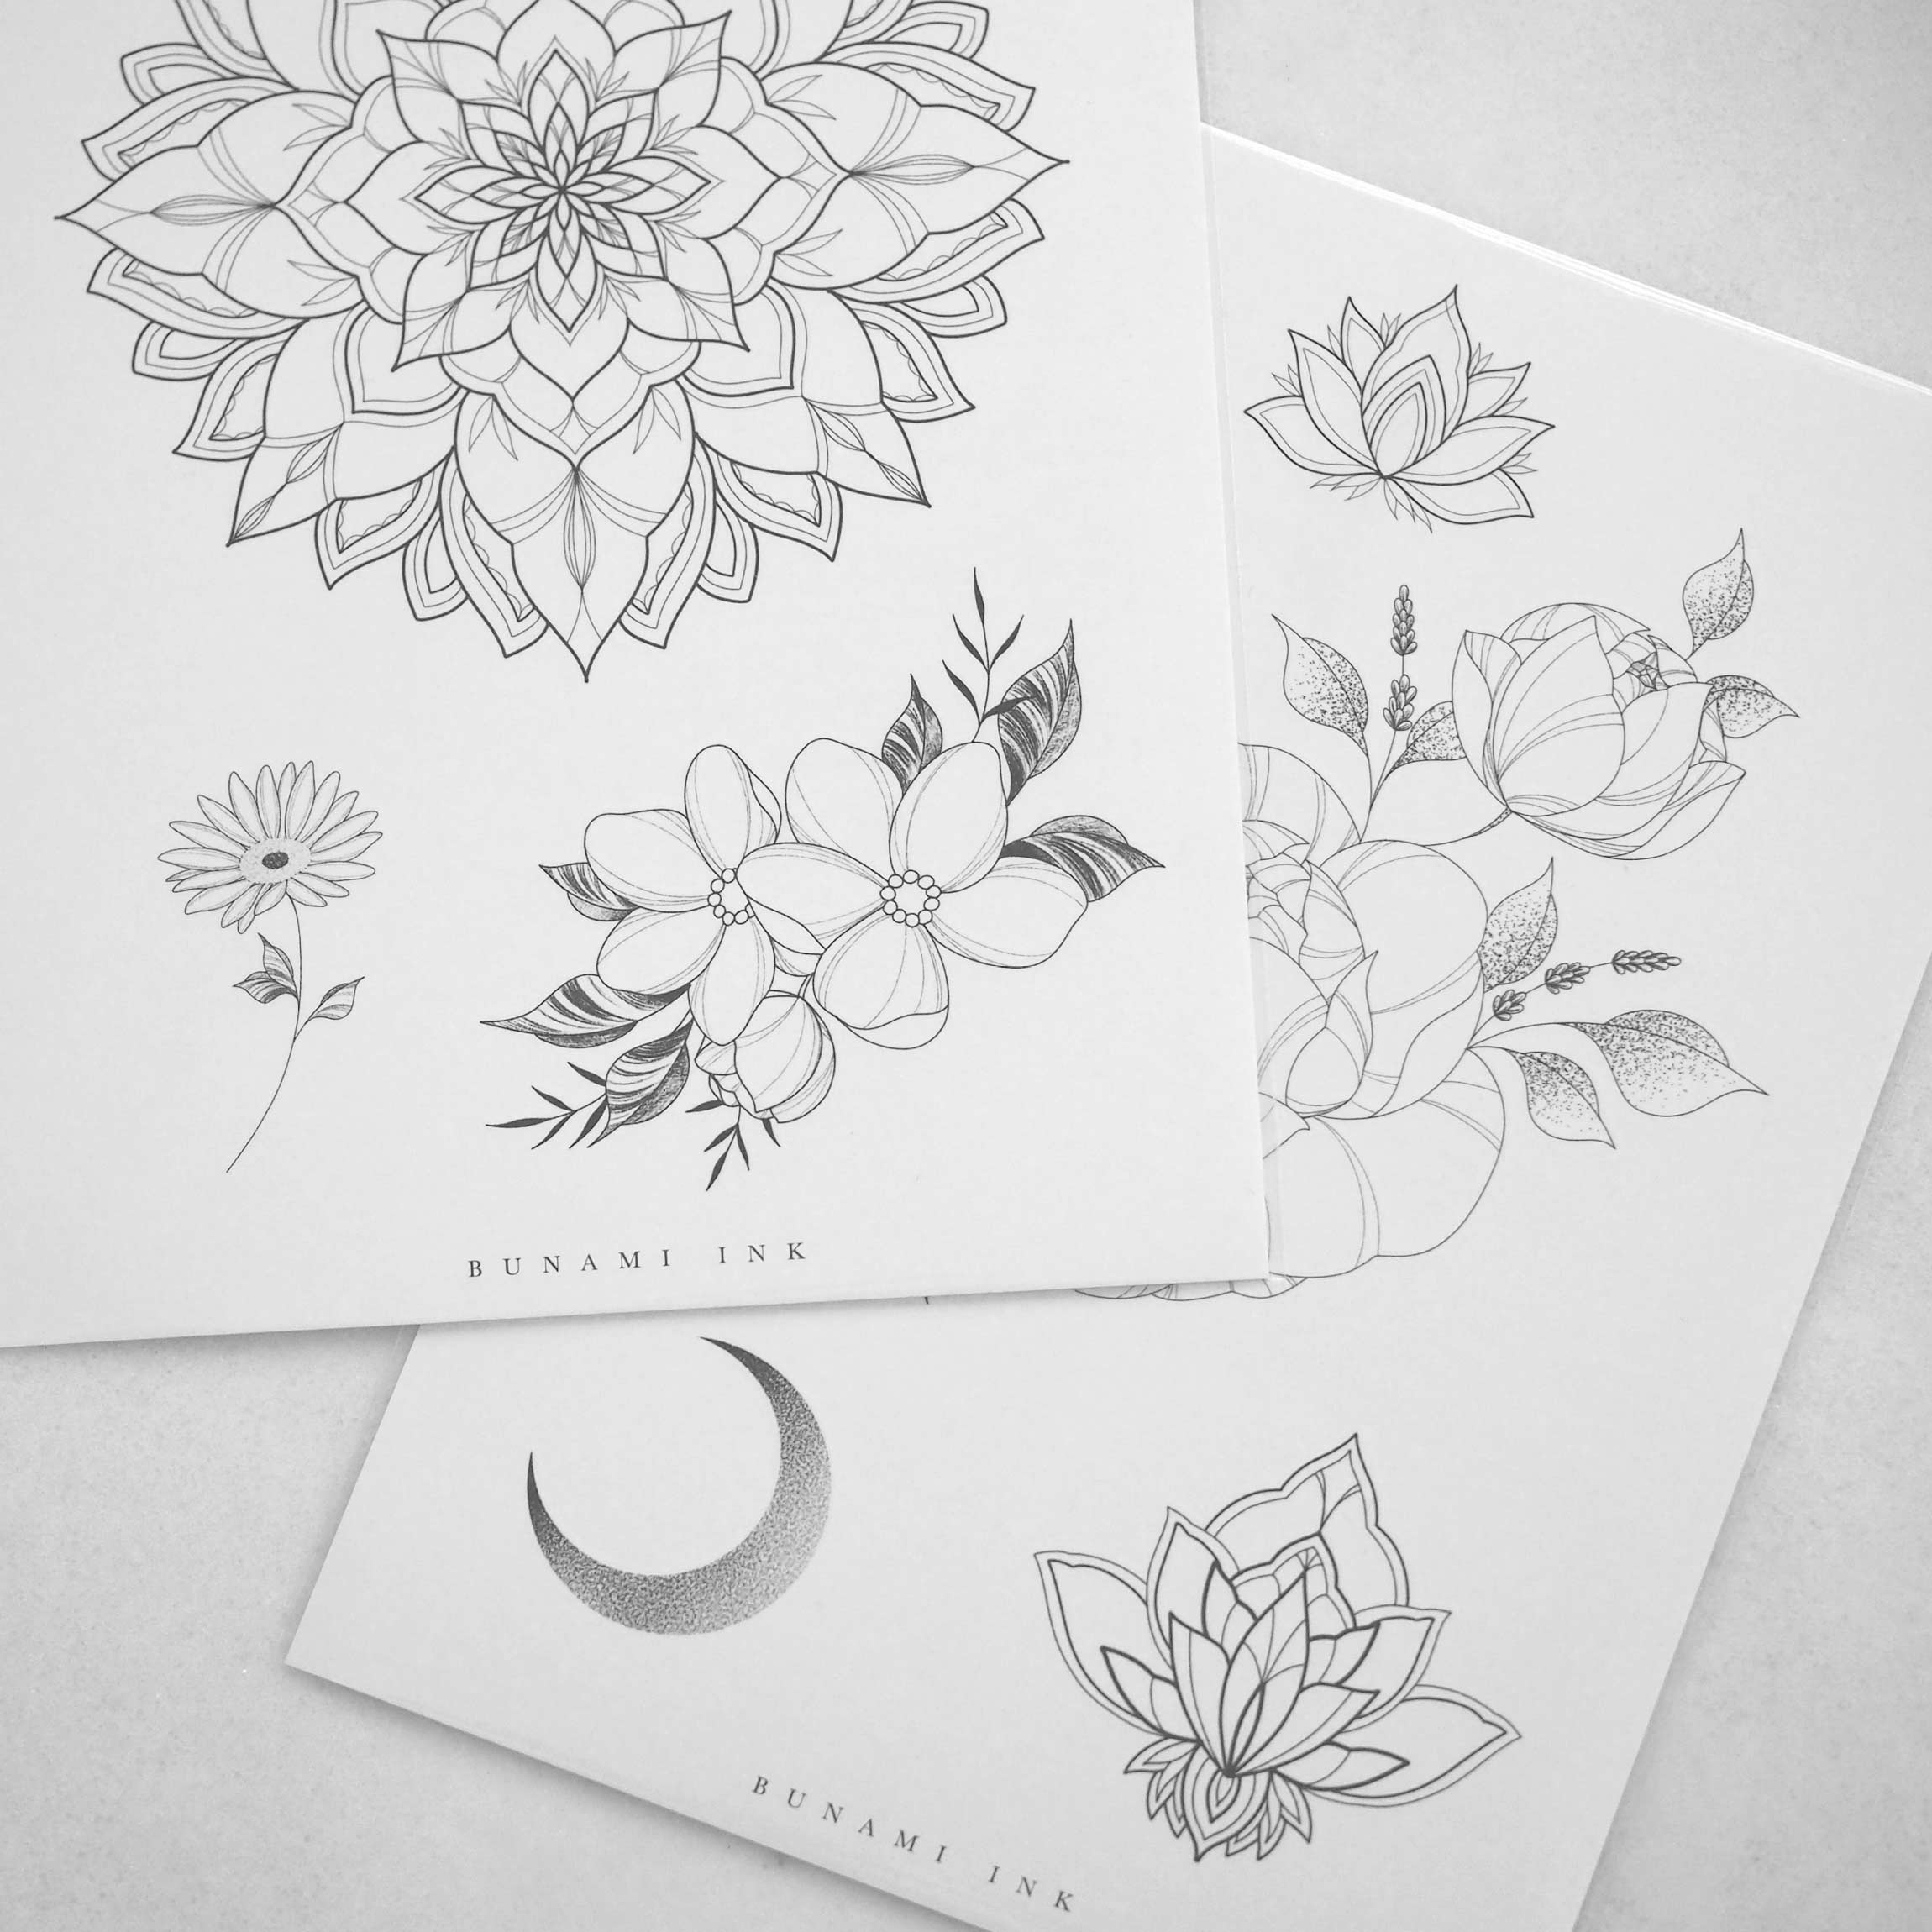 BUNAMI INK temporary tattoos / temporäre Tattoos, flashes A + B